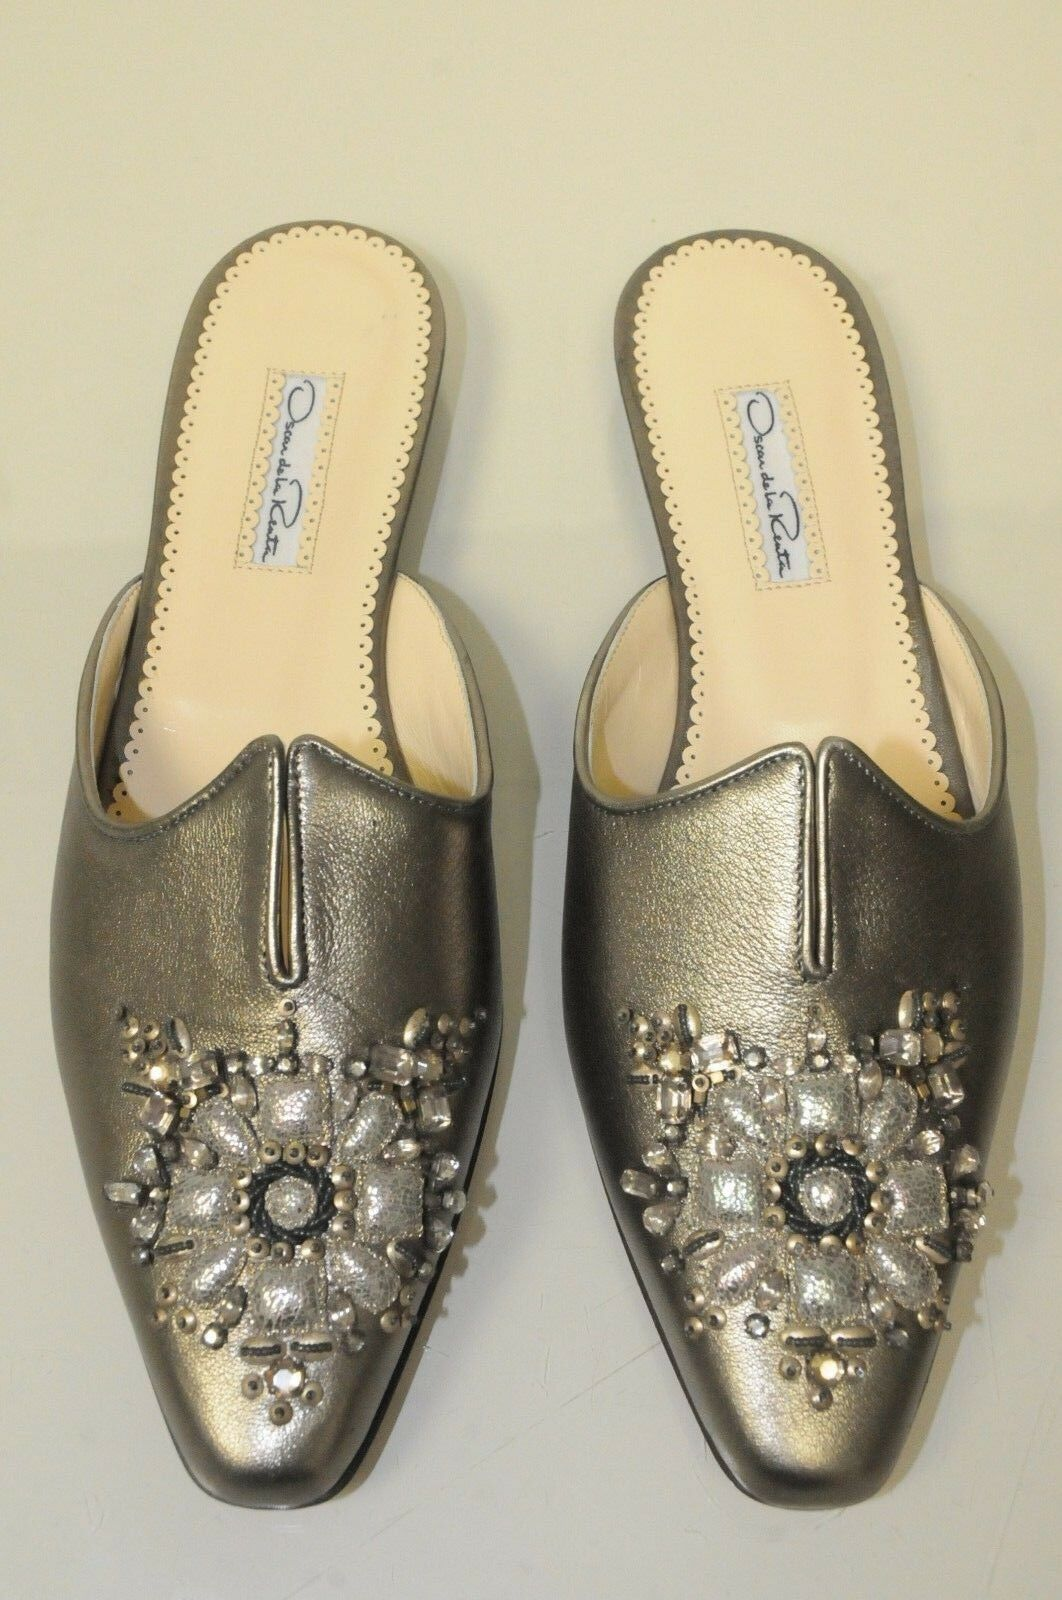 895 NEW Oscar de la Renta Mules Flats Flats Flats Metallic Leather Jeweled shoes 40.5 77b346